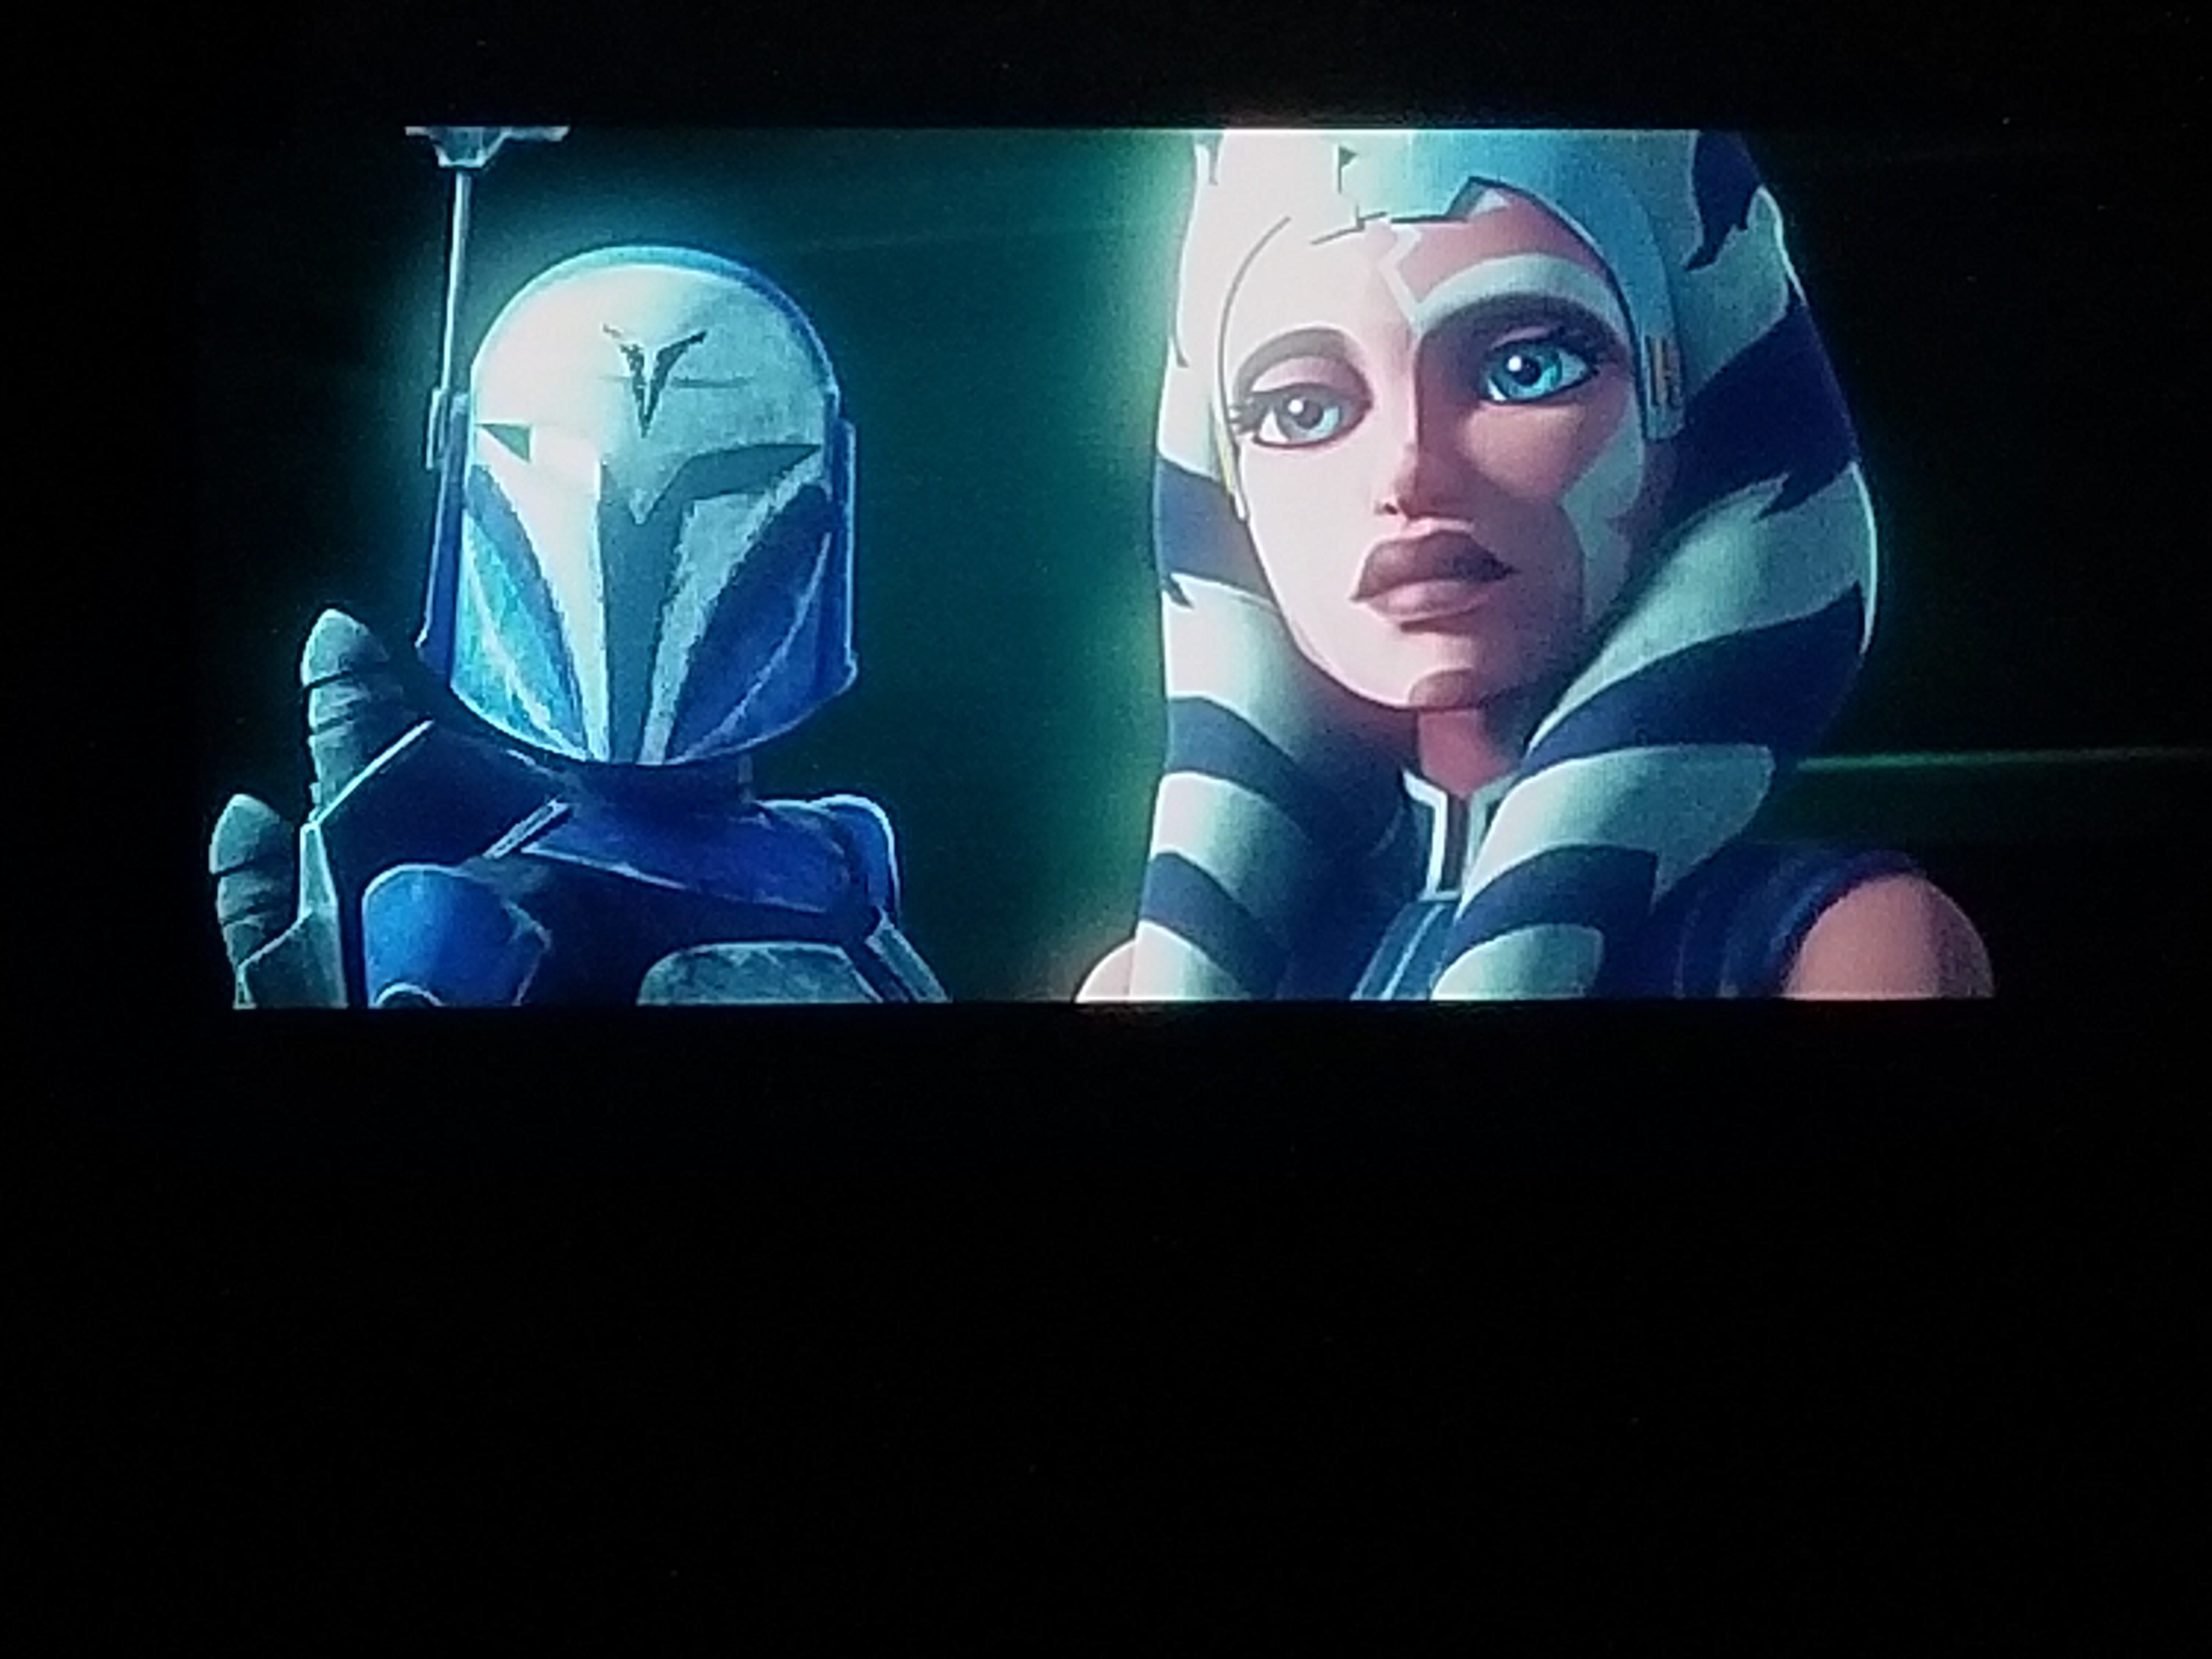 Re-introducing Ahsoka Tano